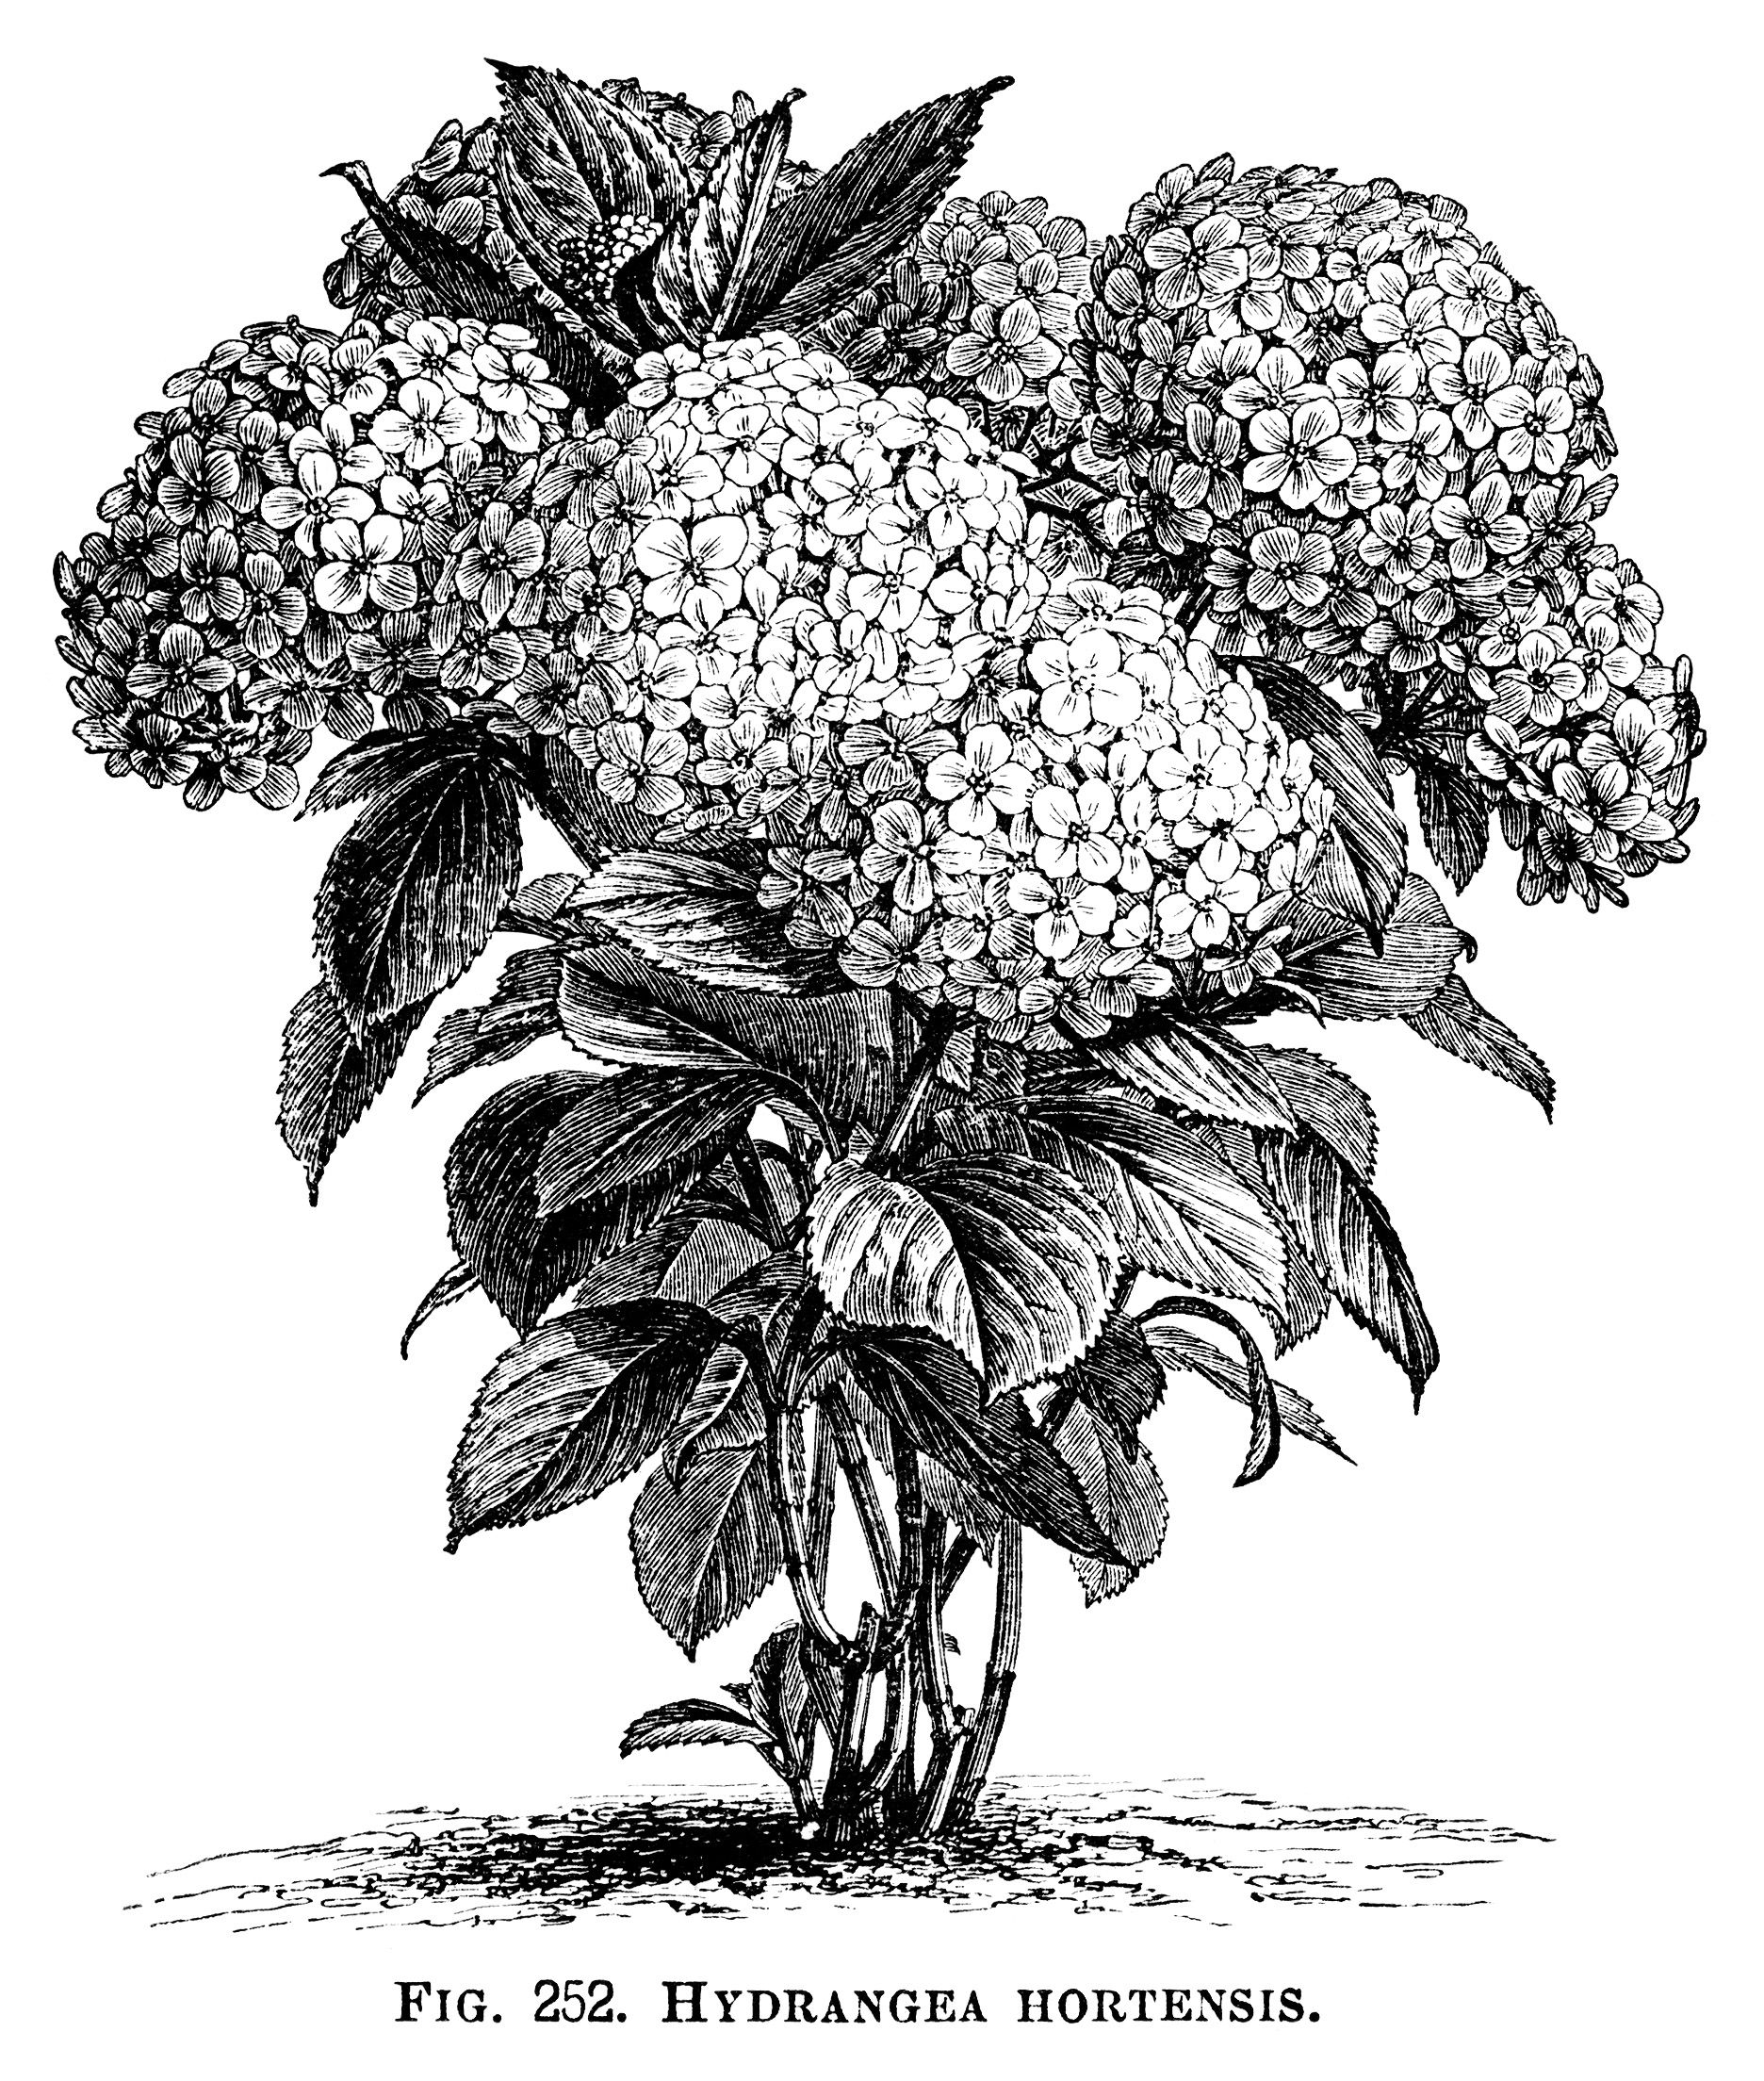 Hydrangea Hortensis Hydrangea Flower Black And White Graphics